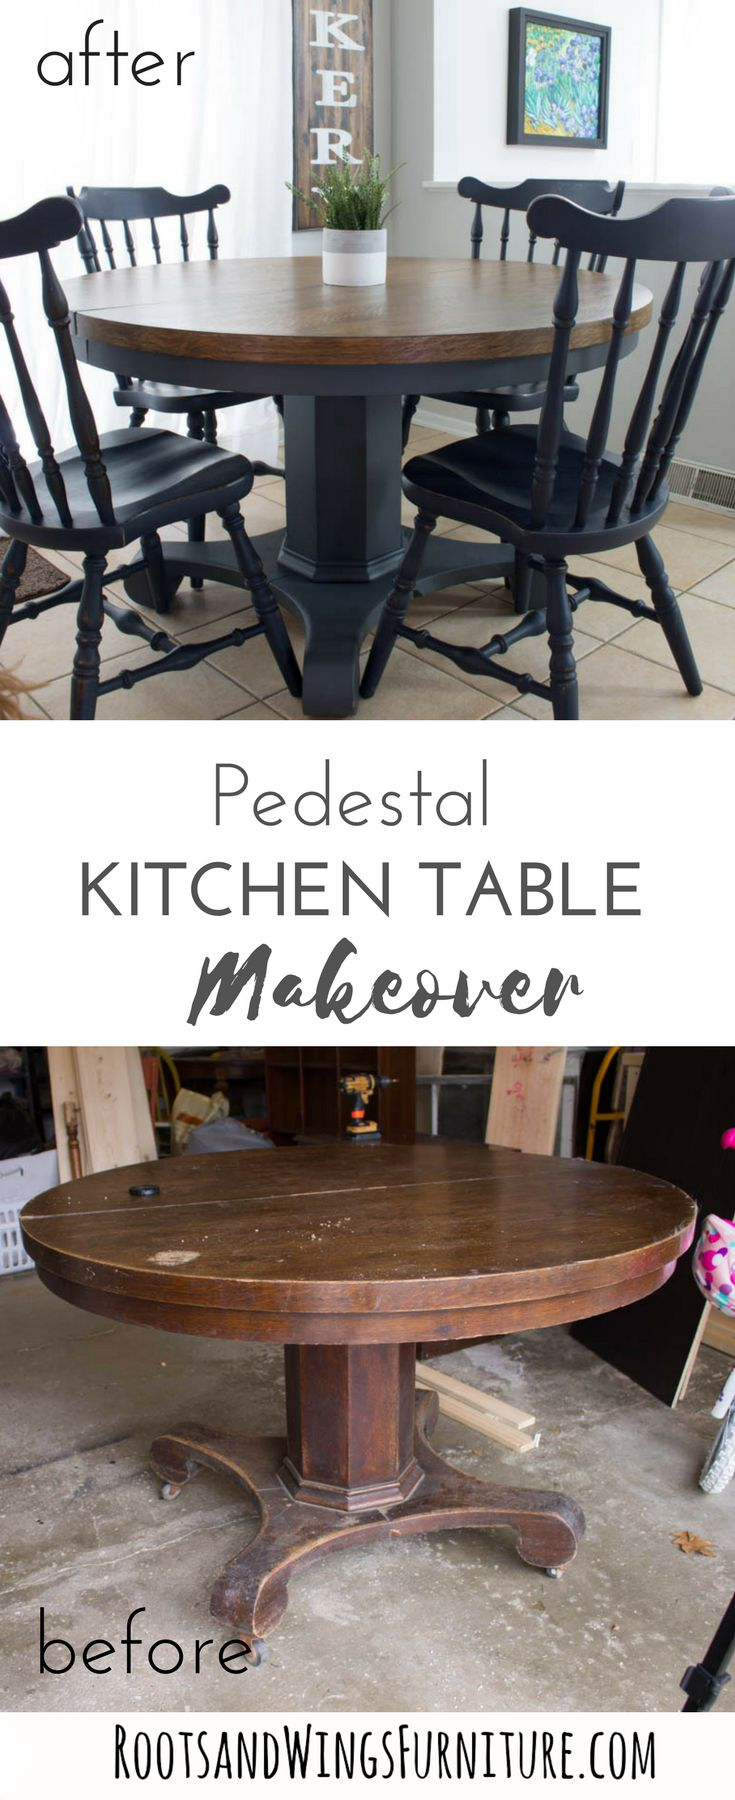 Pedestal Kitchen Table Makeover